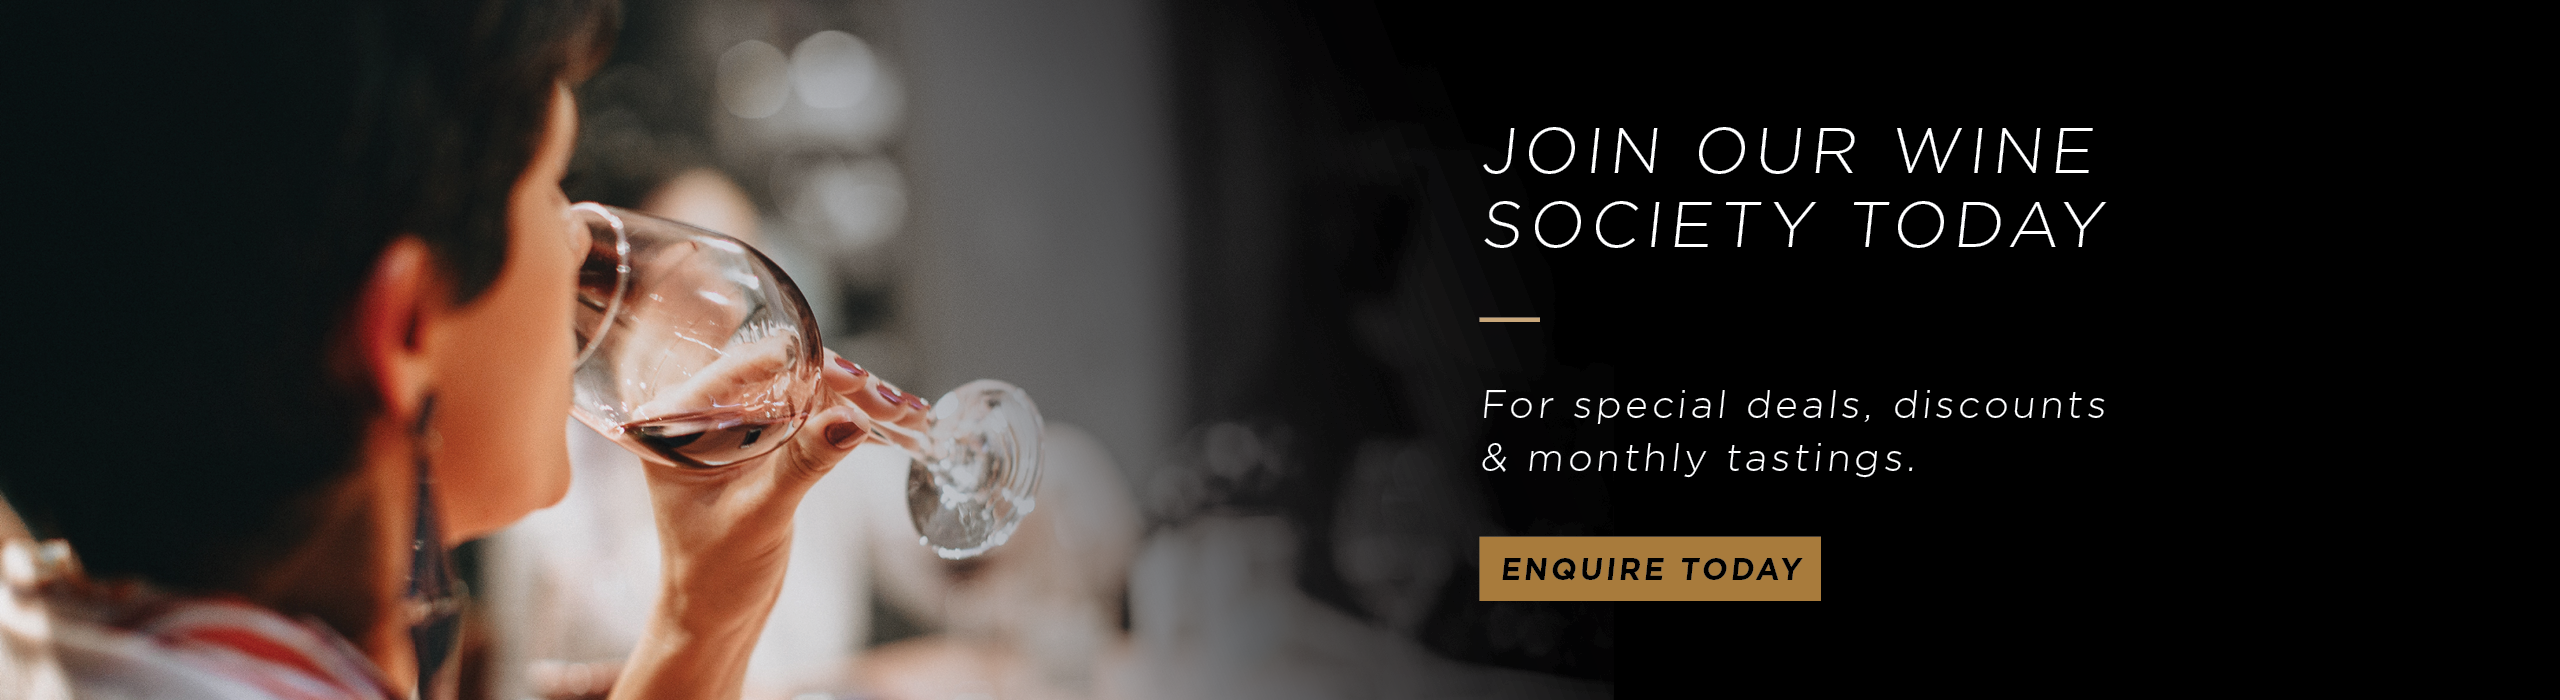 JOIN WINE SOCIETY